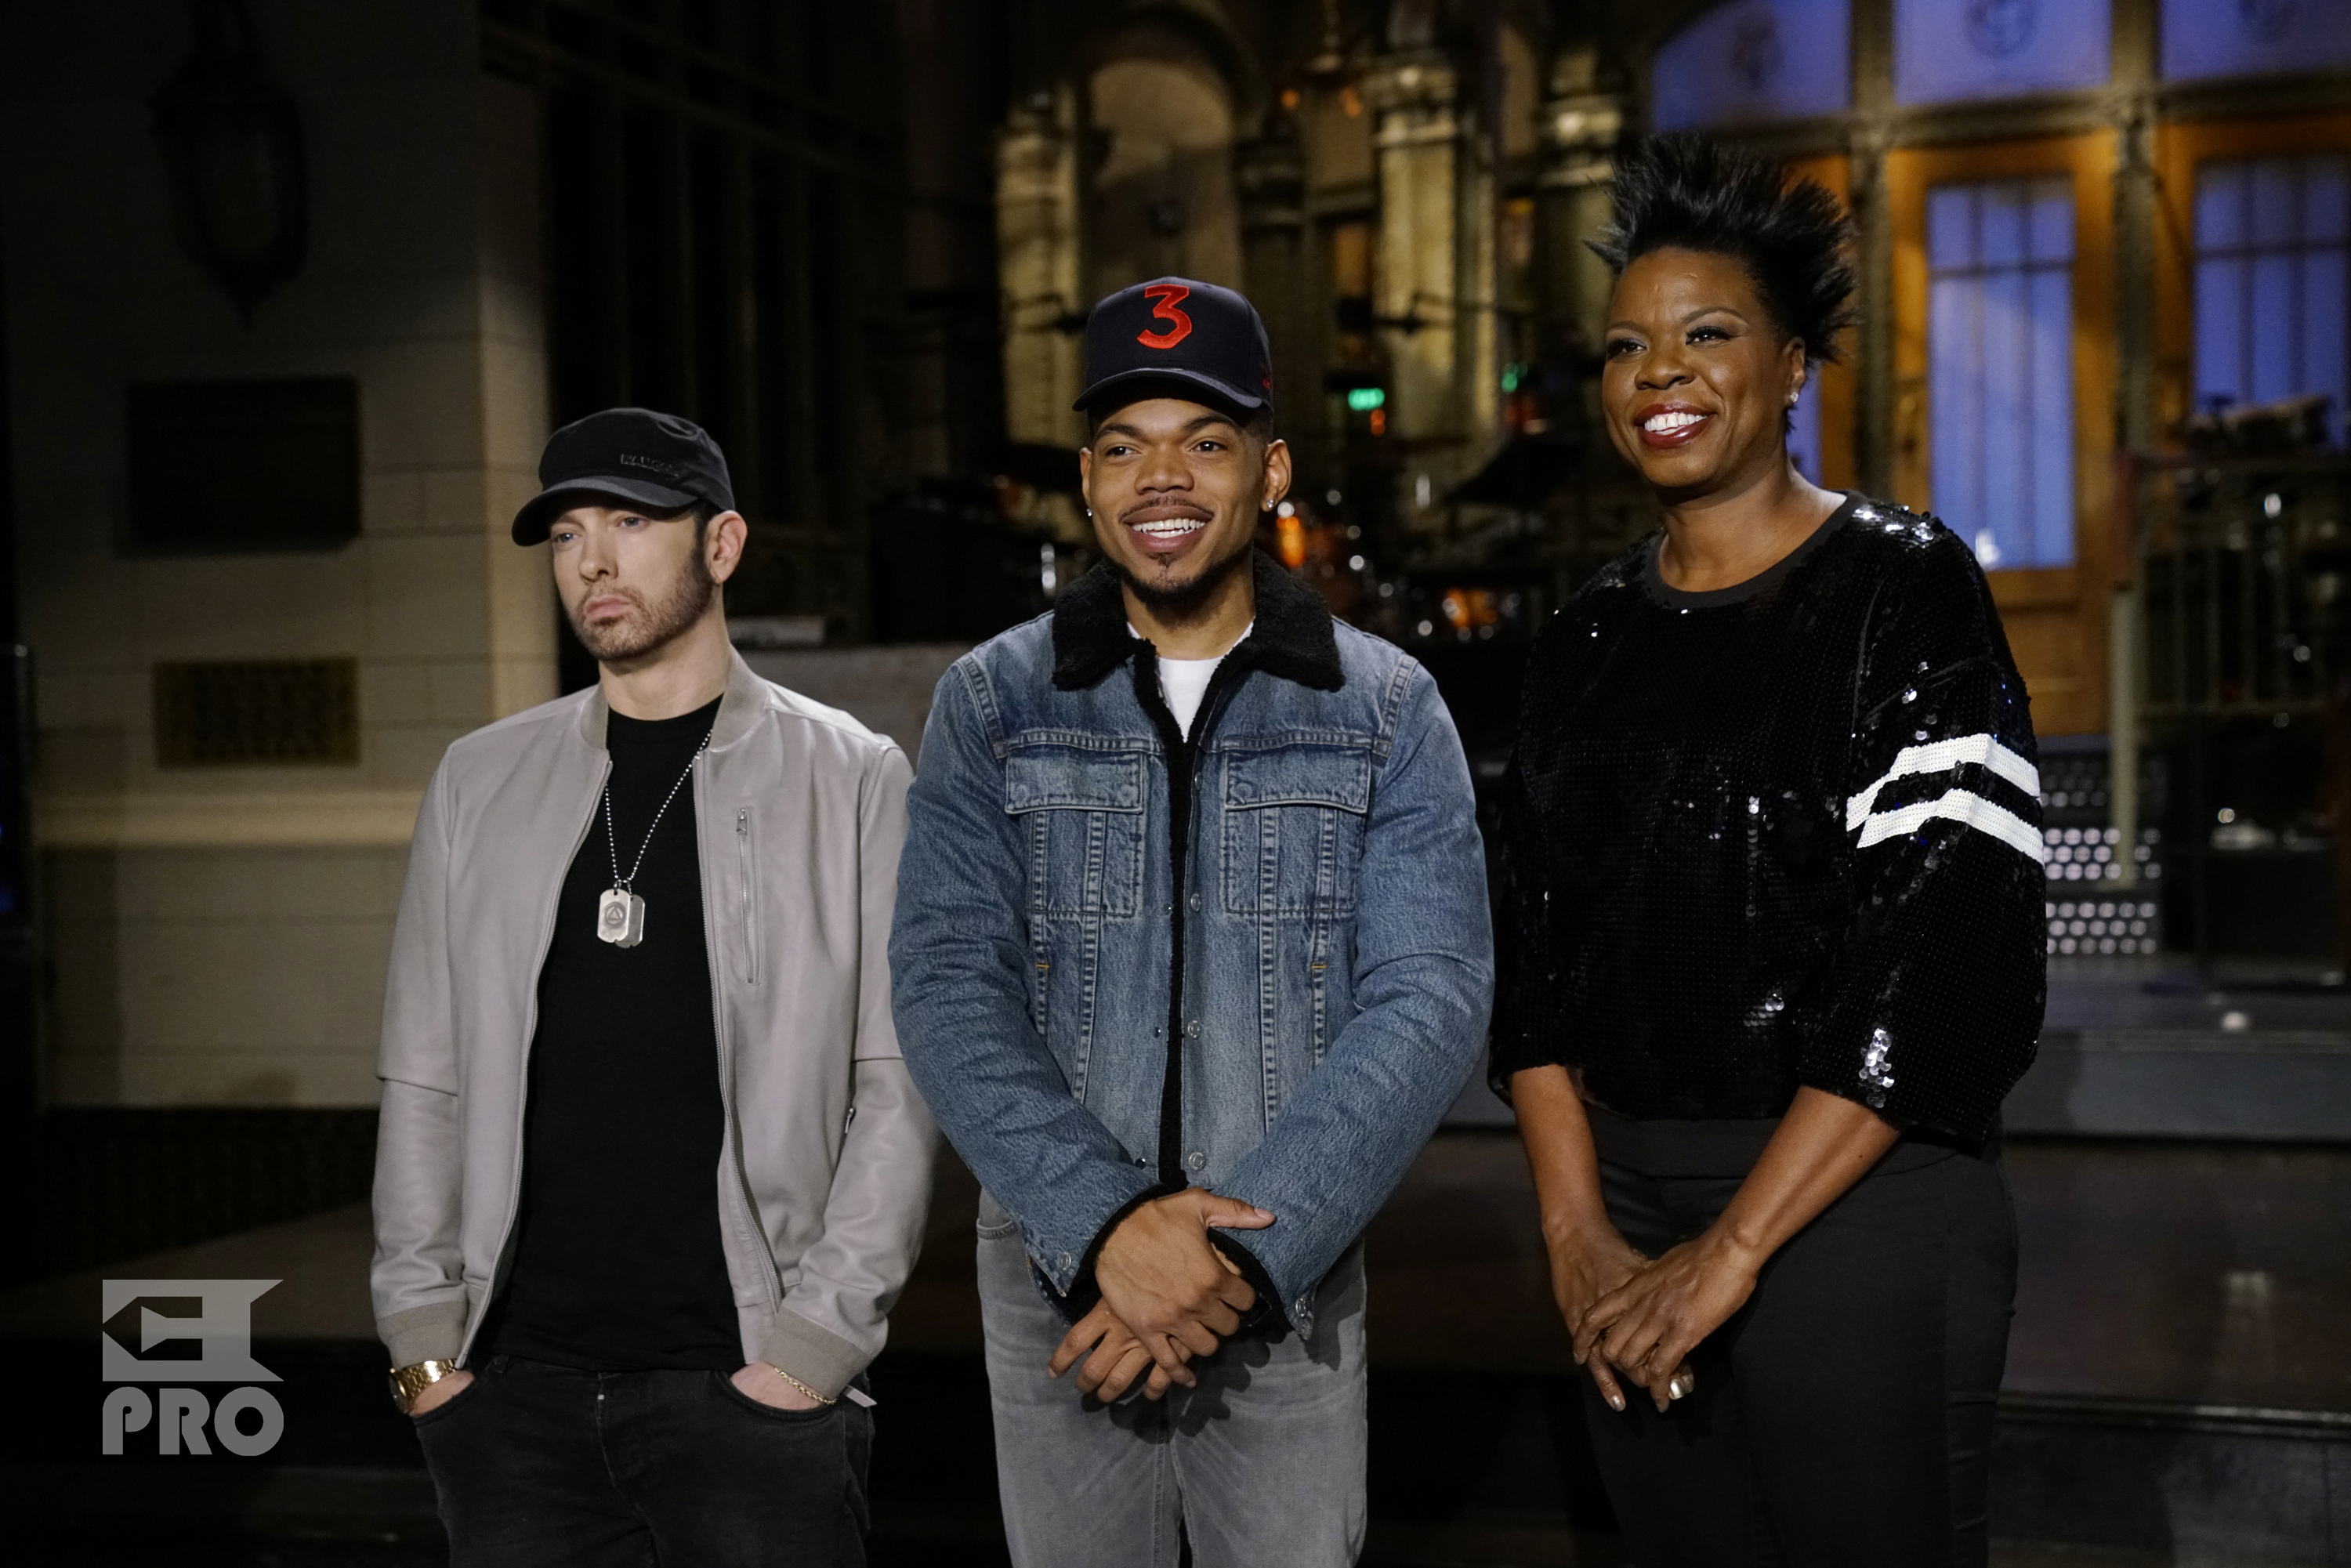 SATURDAY NIGHT LIVE -- Episode 1731 -- Pictured: (l-r) Musical Guest Eminem with Host Chance the Rapper and Leslie Jones during a promo in 30 Rockefeller Plaza -- (Photo by: Rosalind O'Connor/NBC/NBCU Photo Bank via Getty Images)